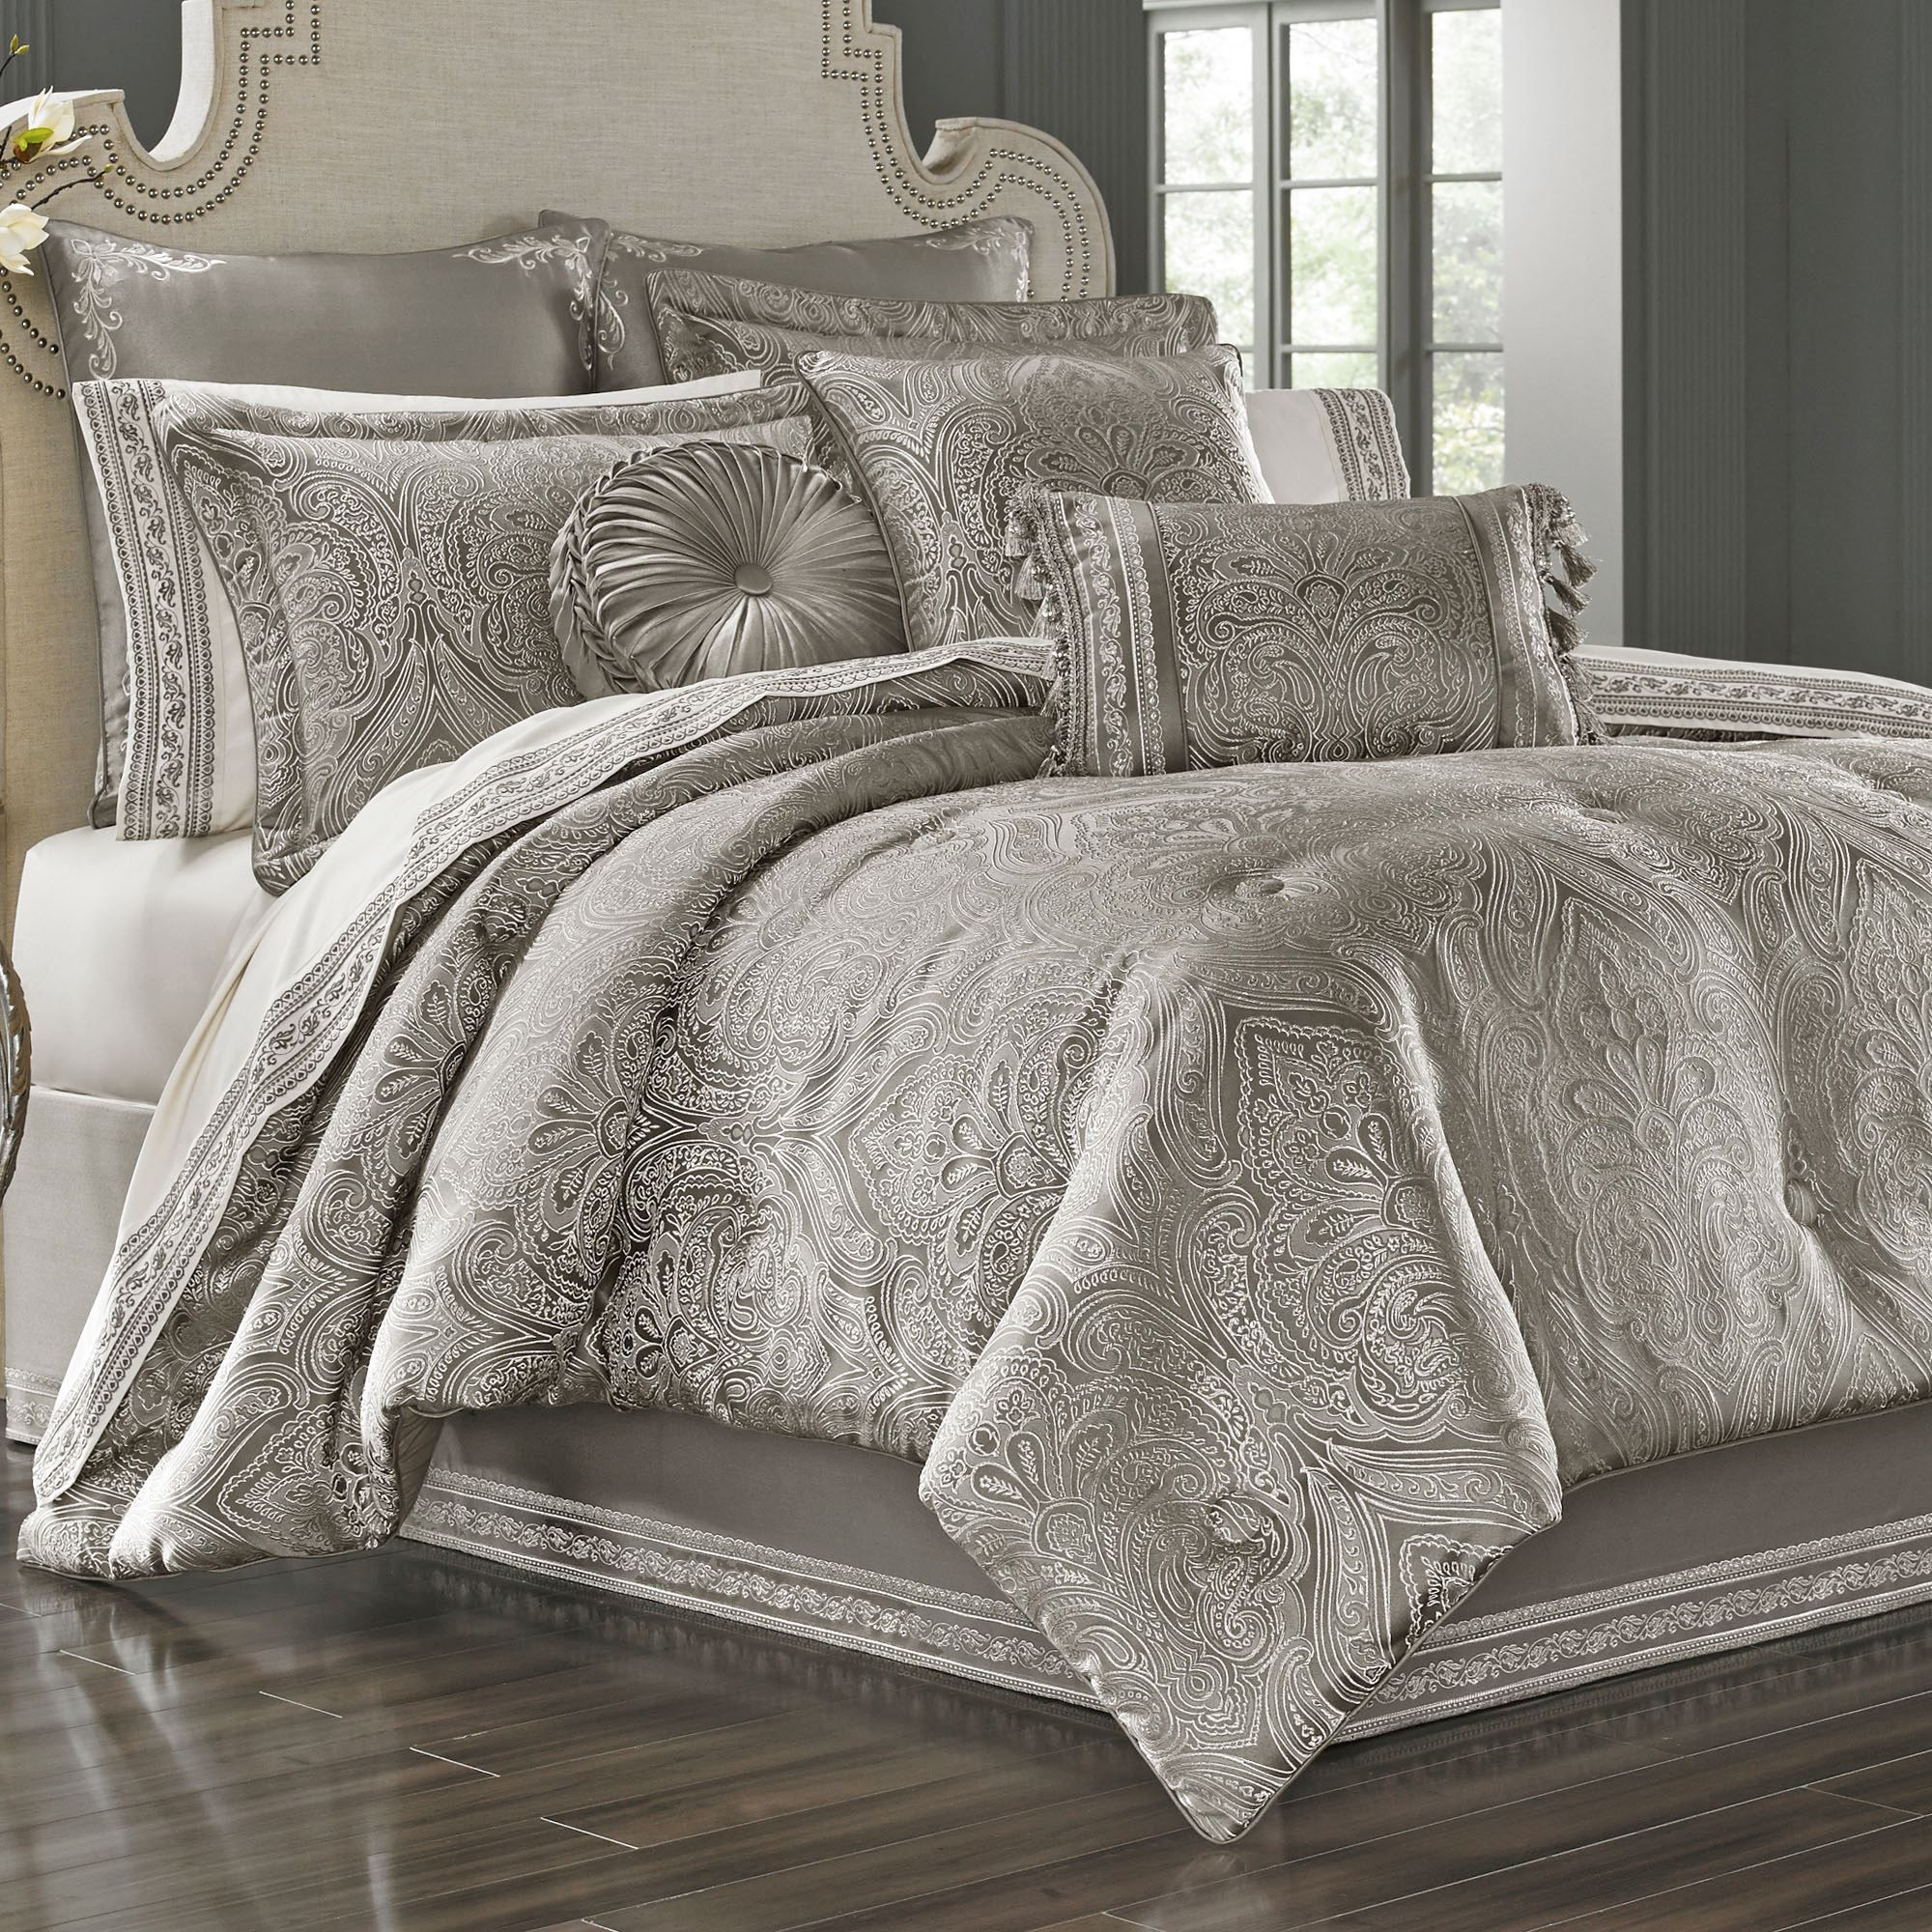 lin bobbi bedding comforter products on queen shop ny mid linen hawkins stonewashed